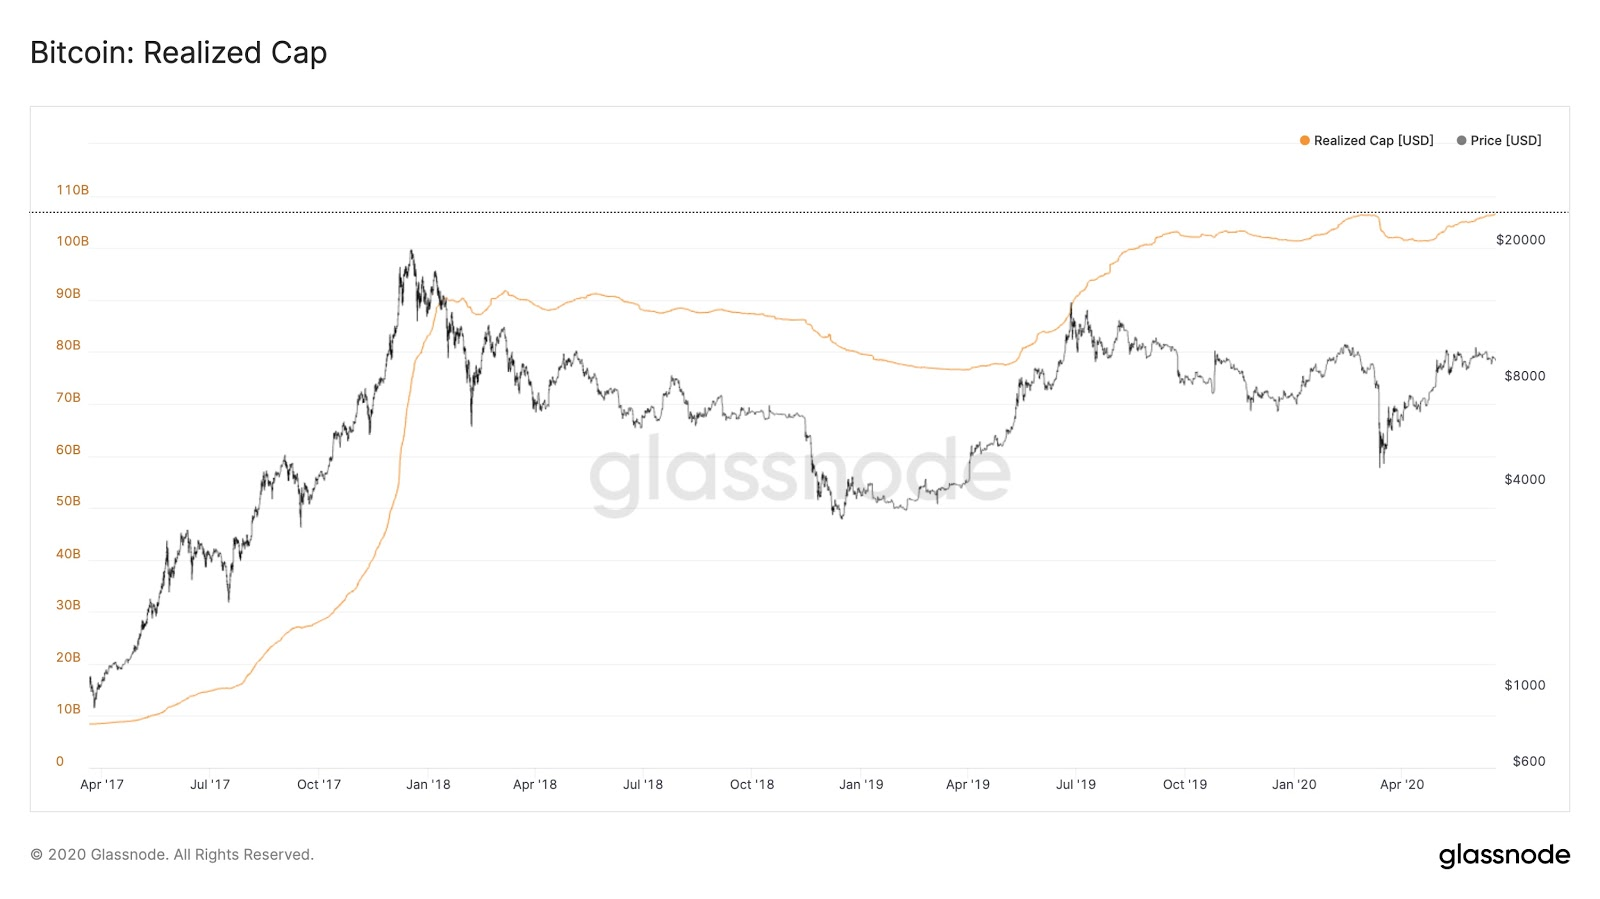 The realized cap of Bitcoin hits a new high. Source: Glassnode